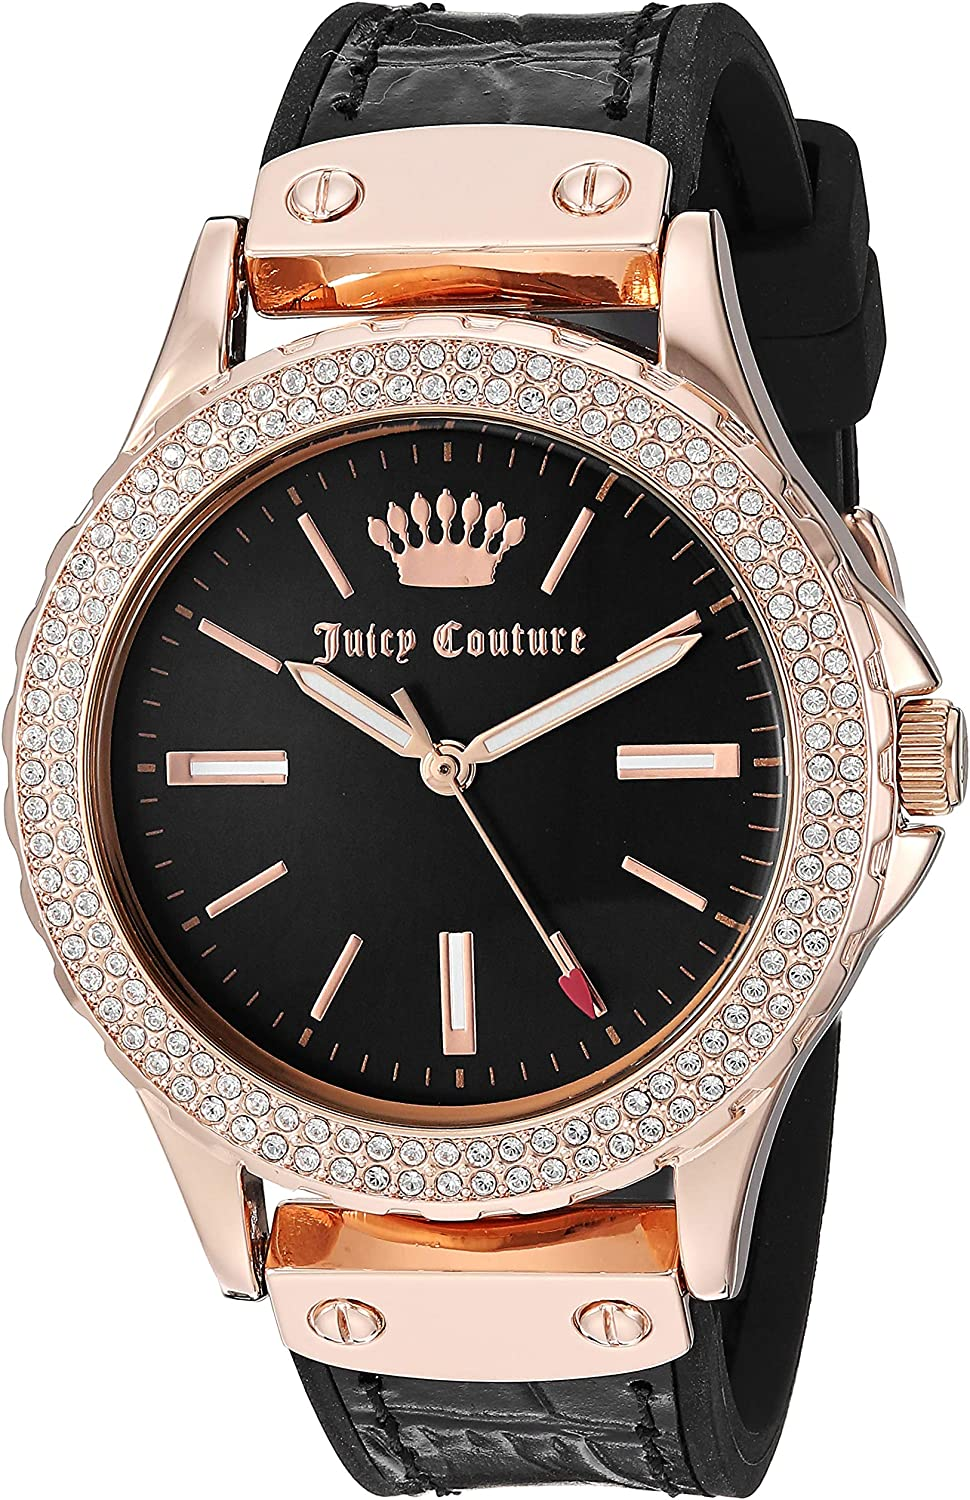 Juicy Couture Black Label Women s Swarovski Crystal Accente Strap Watch